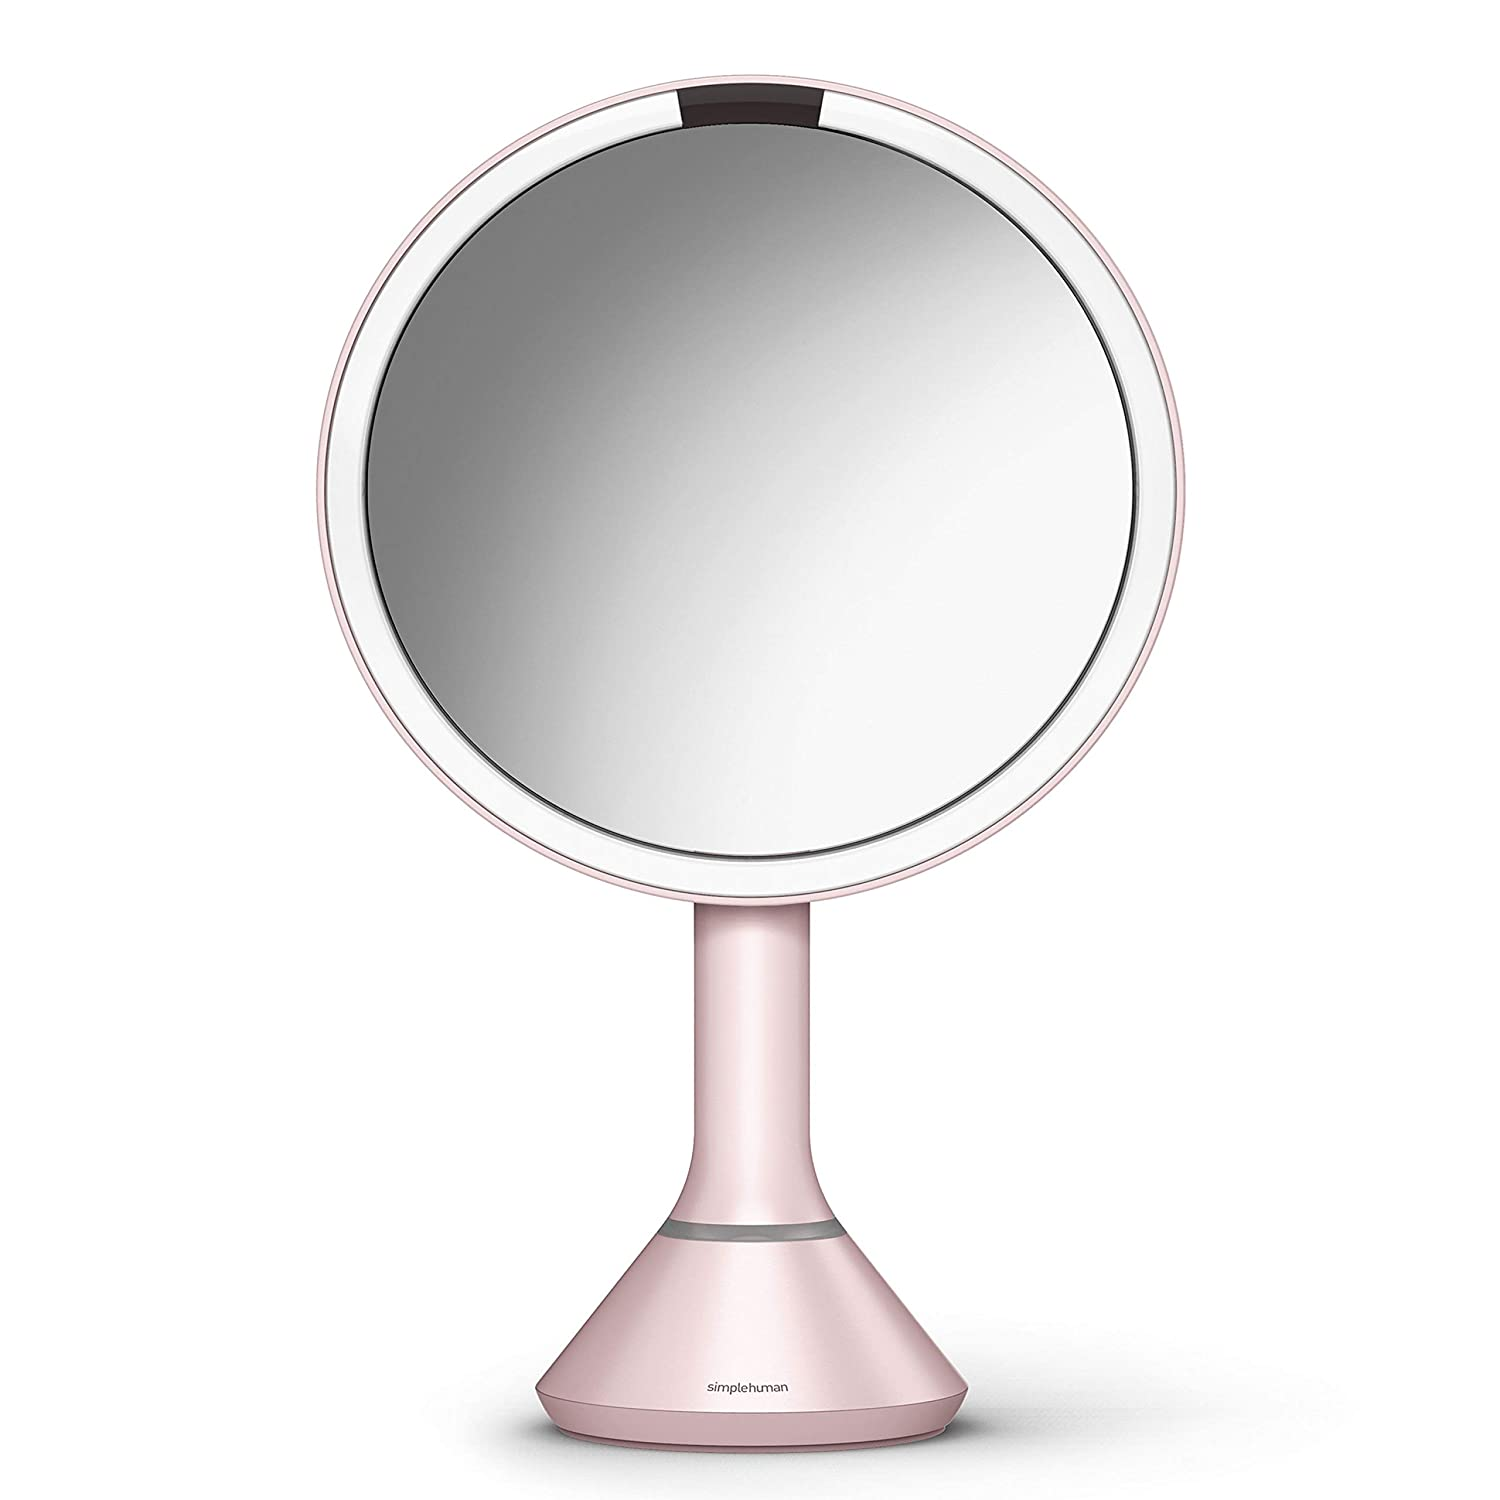 "simplehuman Sensor Lighted Makeup Vanity Mirror, 8"" Round with Touch-Control Brightness, 5X Magnification, Pink Stainless Steel, Rechargeable and Cordless"